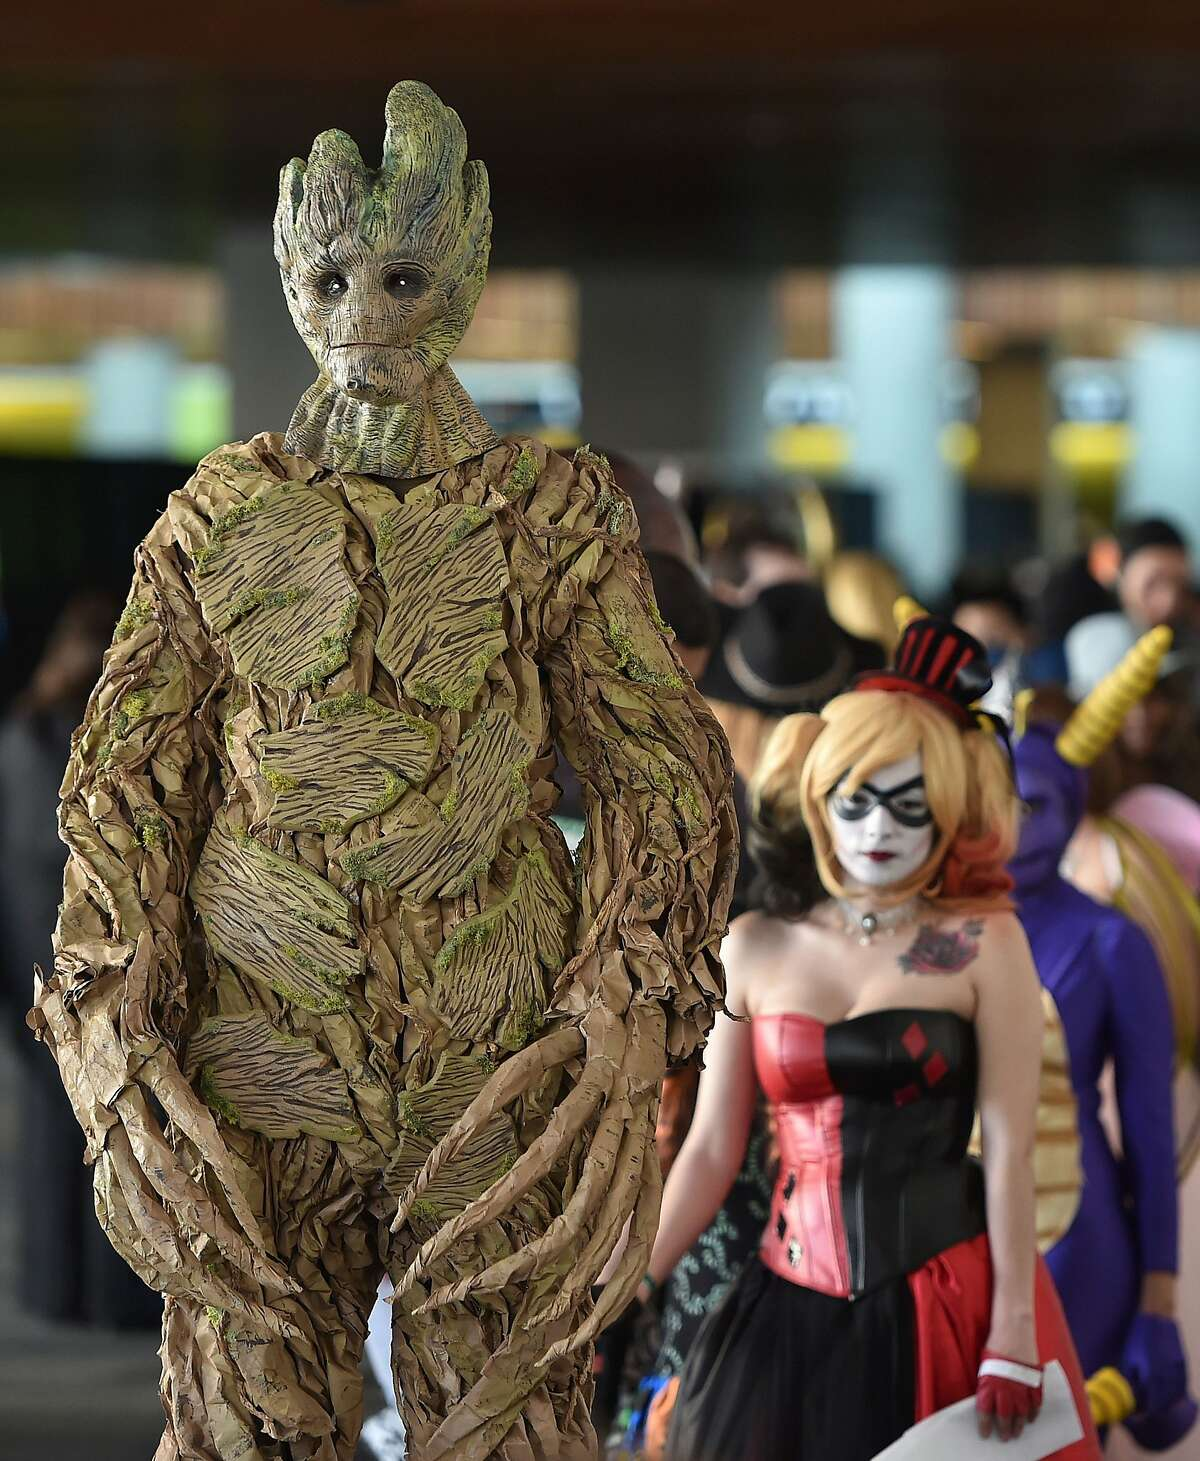 Dressed as Groot, Dan Collins (L) waits in line to be pre-judged for a costume contest at the Silicon Valley Comic Con in San Jose, California on March 19, 2016. The comic and entertainment-themed event features exhibits, panel discussions and pop culture artistry.